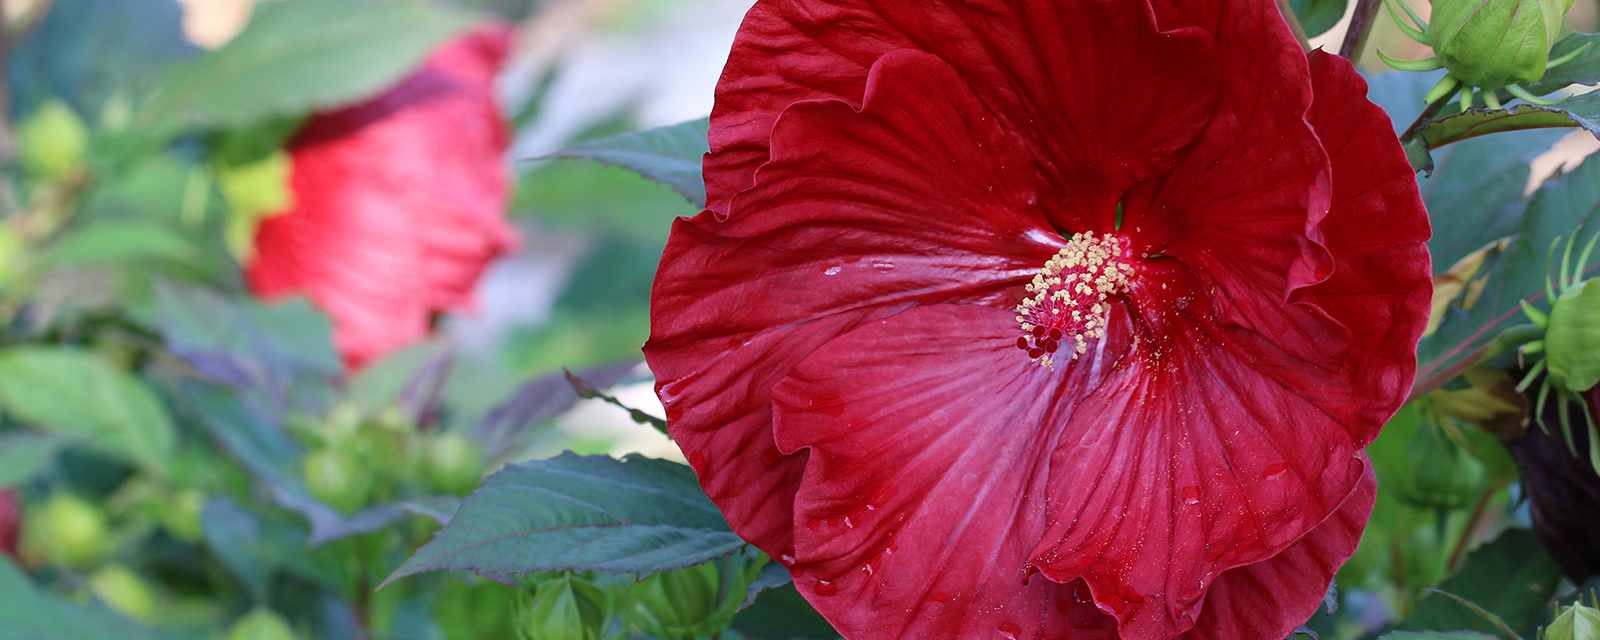 Cranberry crush hardy hibiscus